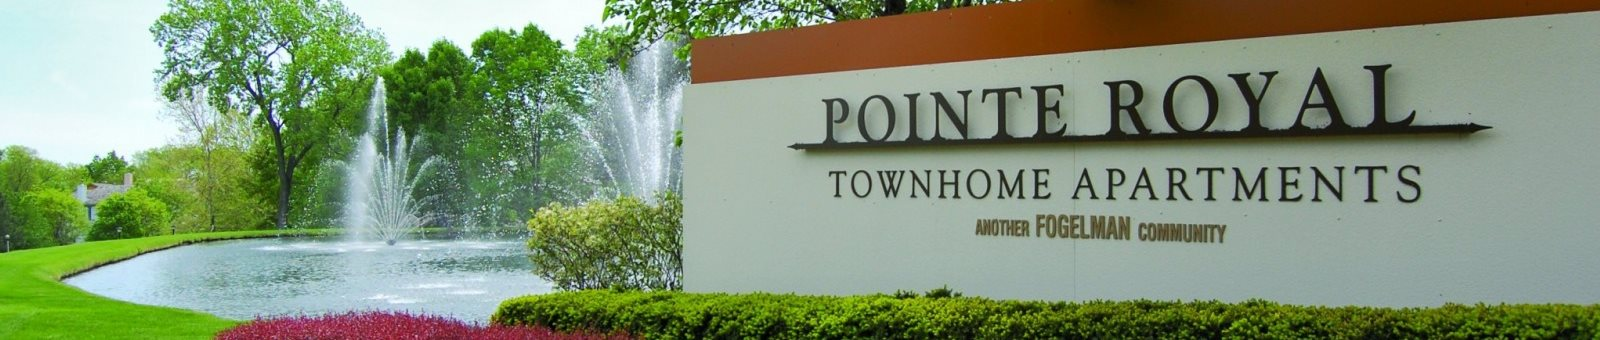 Pointe Royal Apartment Homes Sign with Fountain